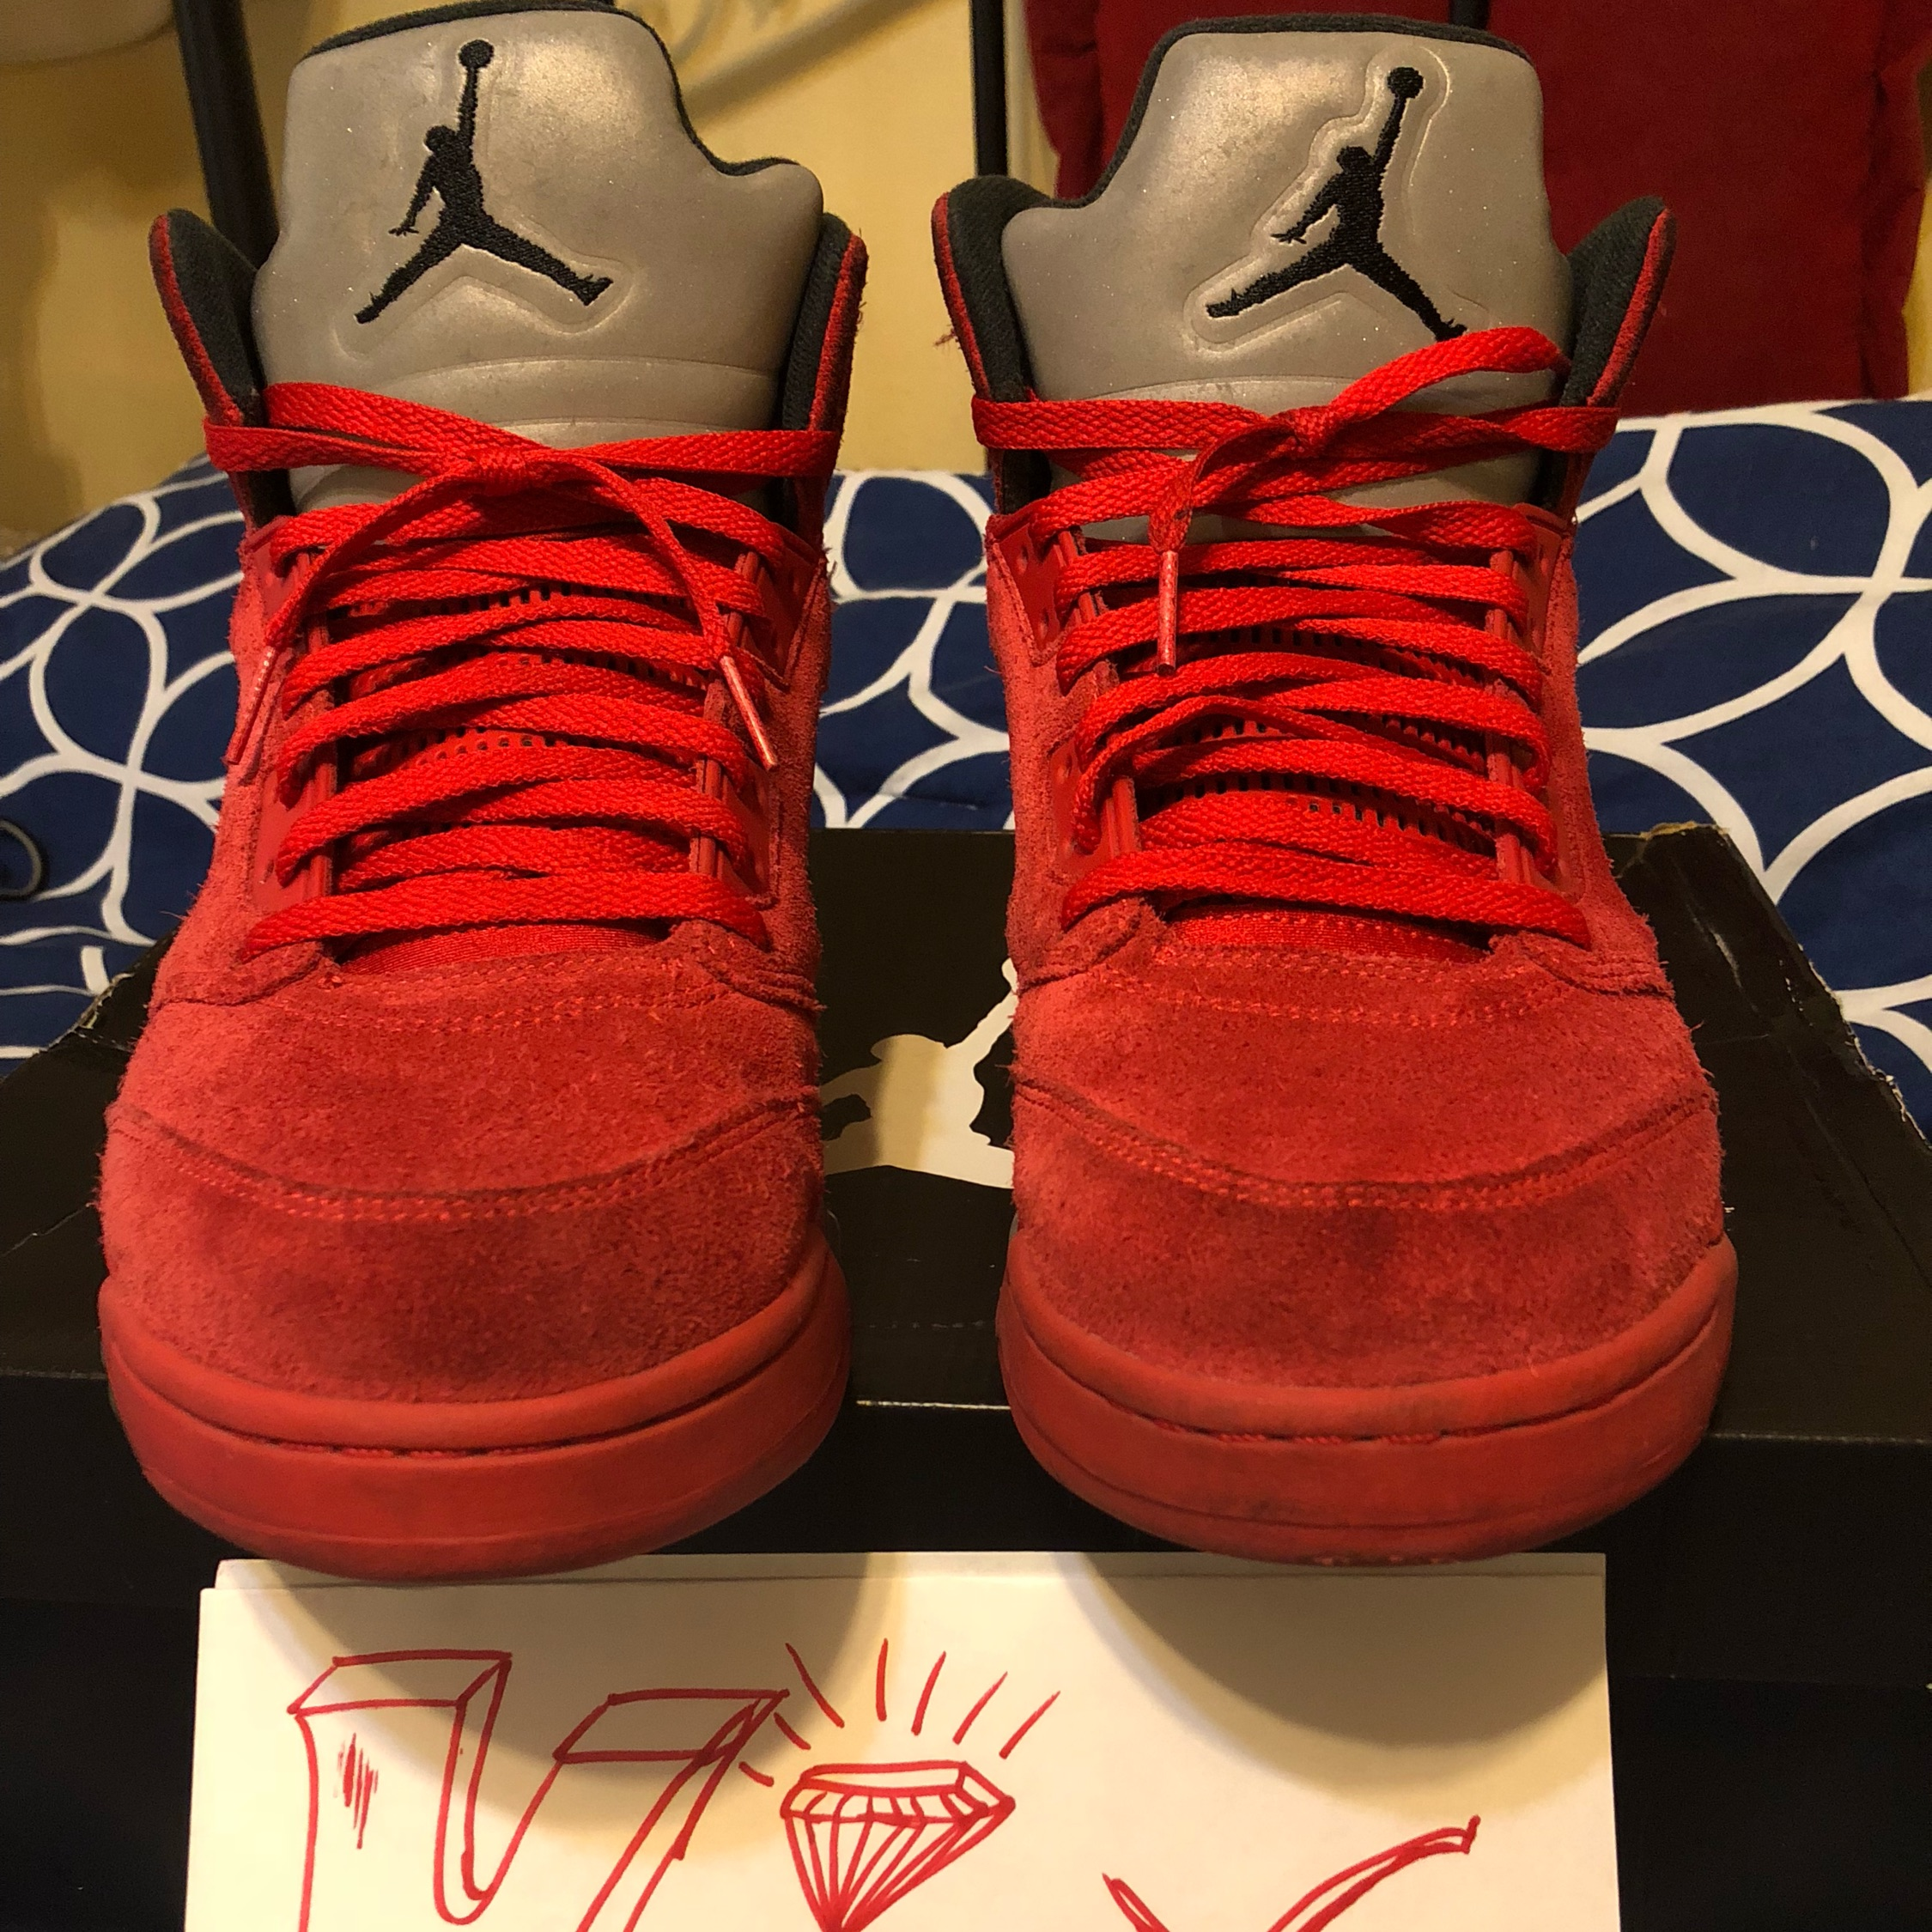 new style 85fcc b2d51 (2017) Raging Bull 5S/ Red Suede